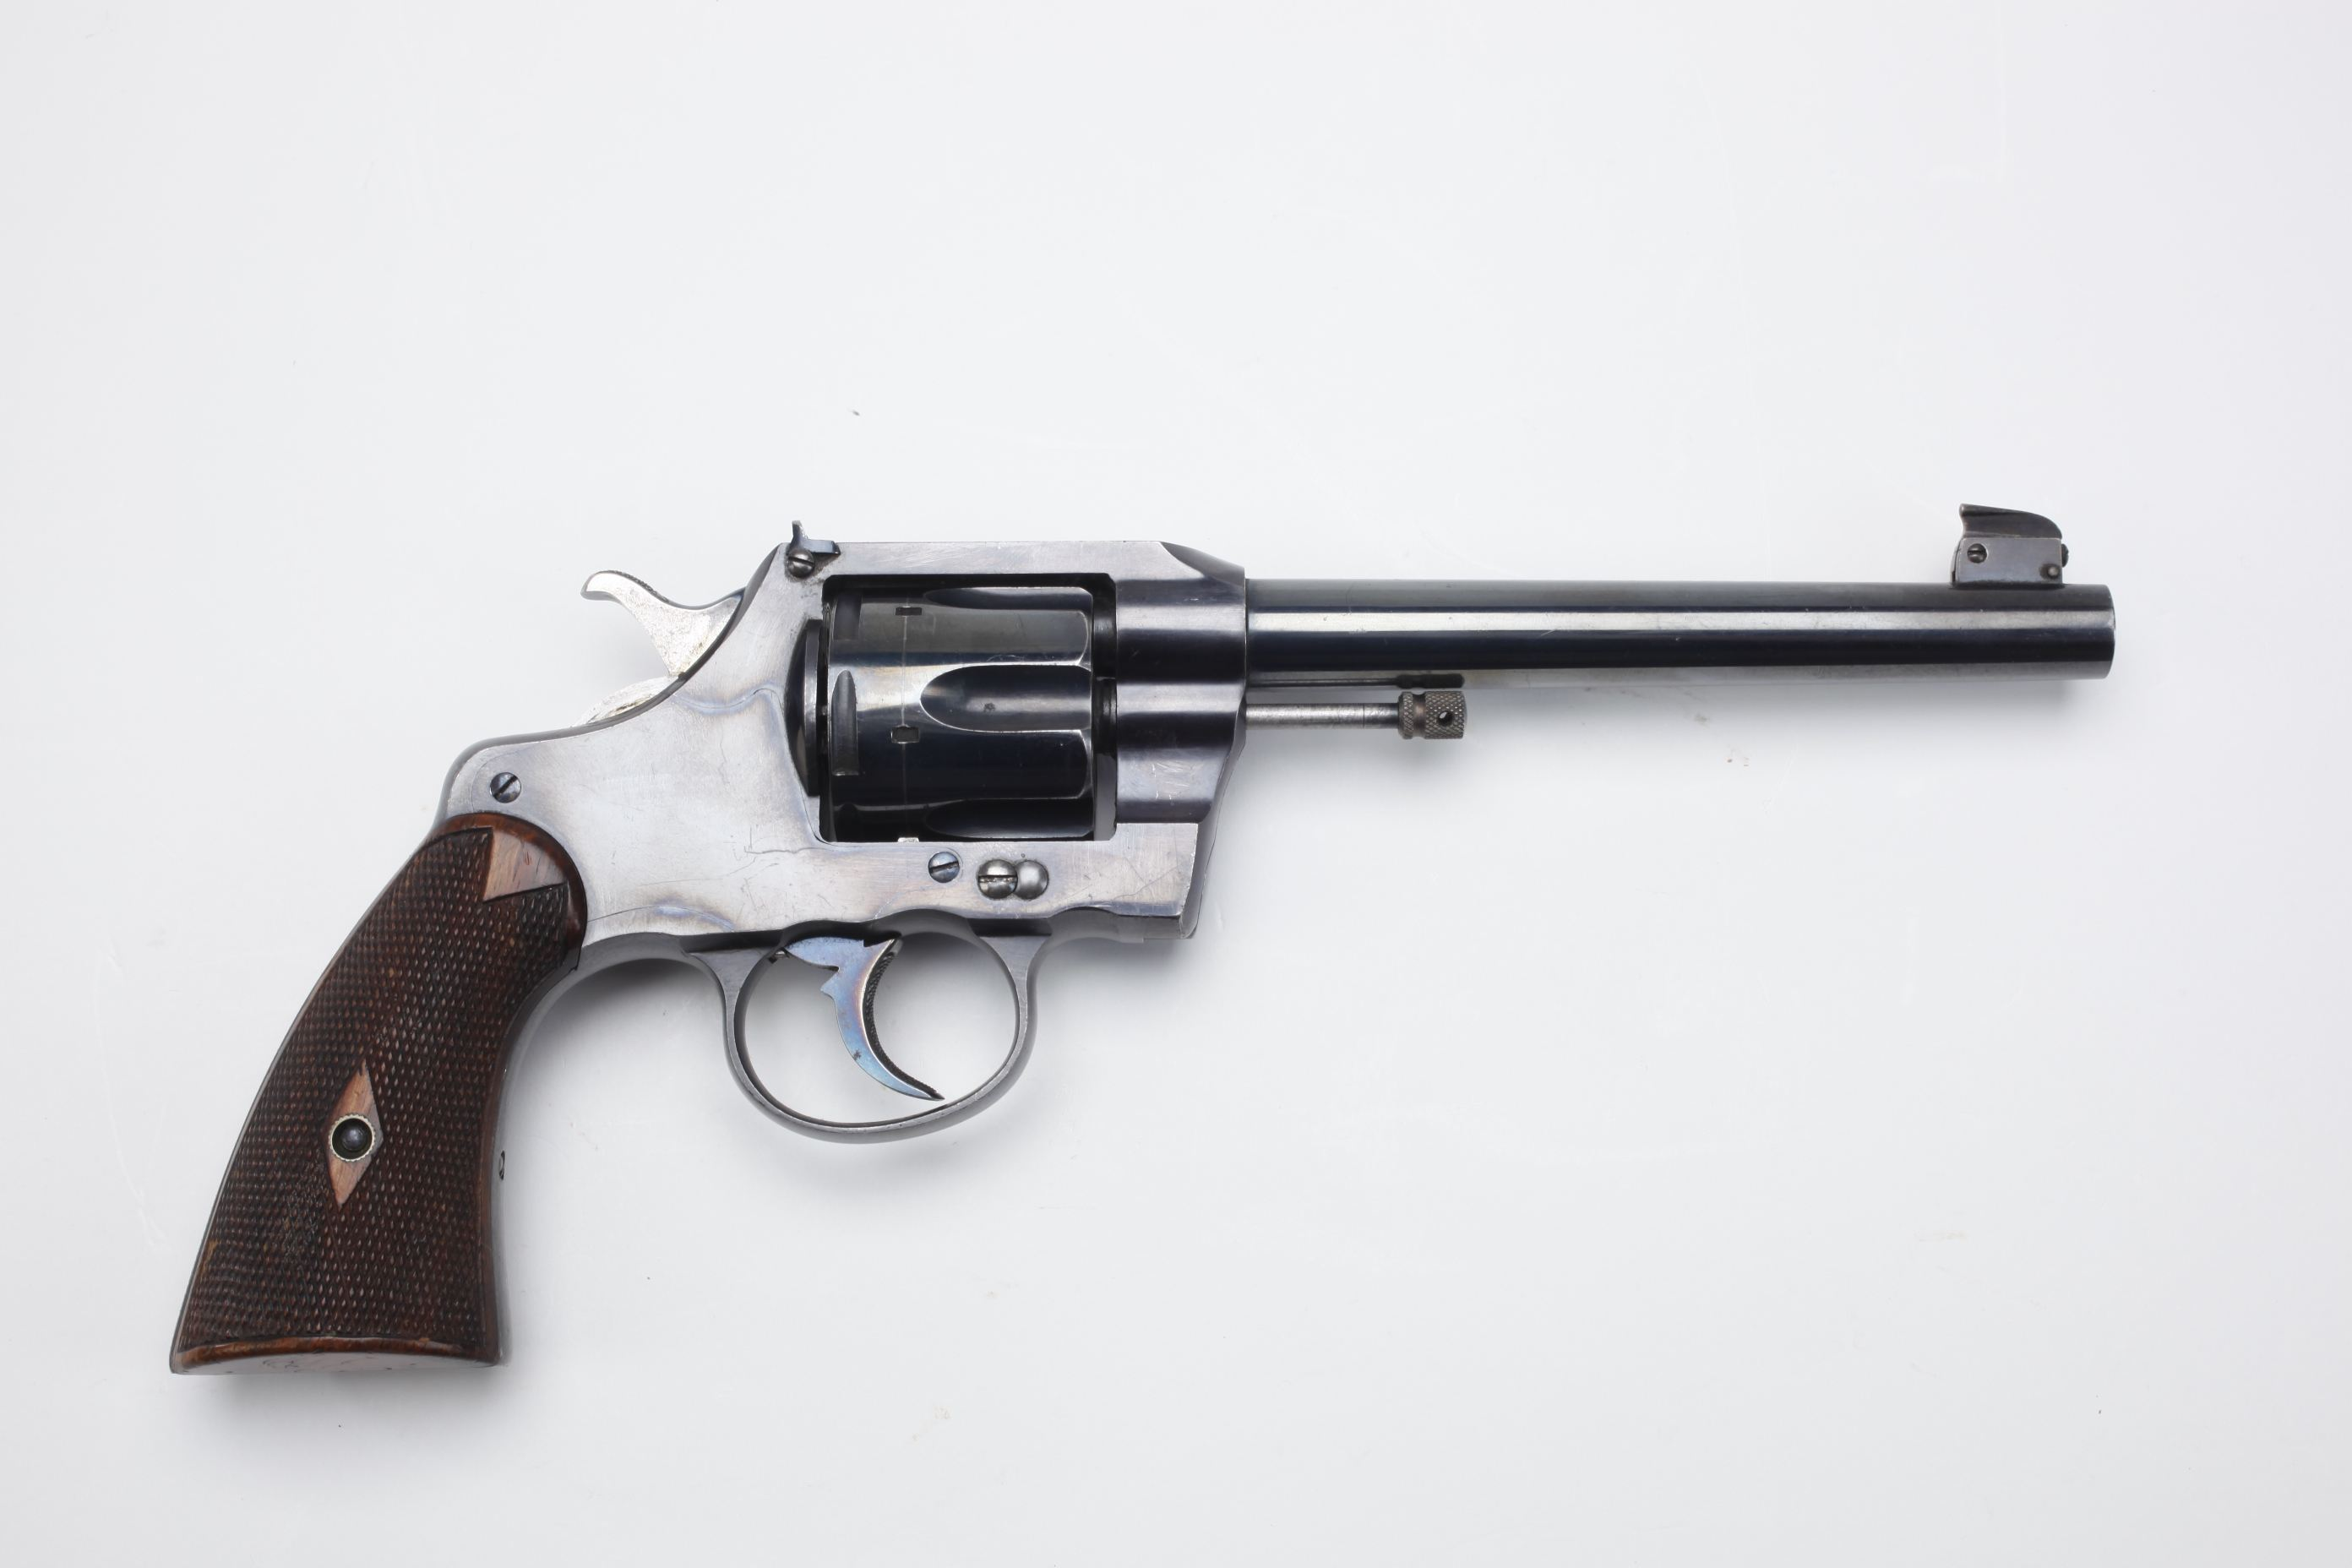 Colt Presentation Officers Model Target Revolver